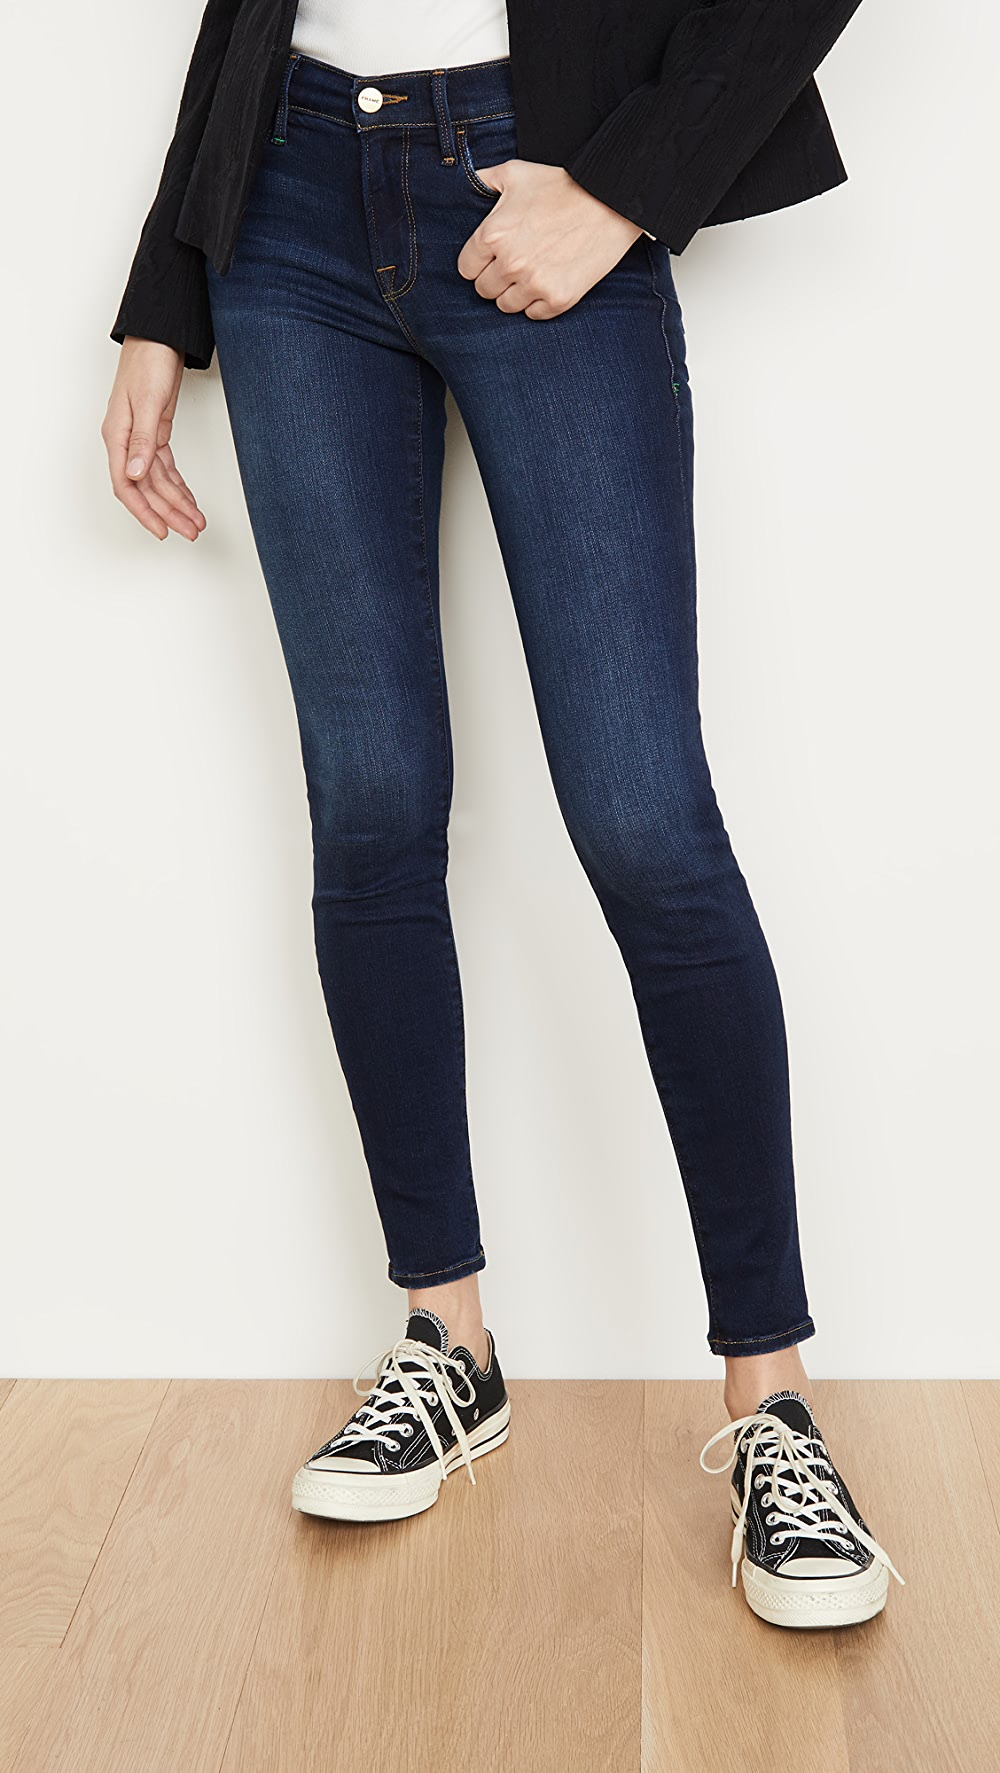 100% True Frame - Le Skinny De Jeanne Jeans Activating Blood Circulation And Strengthening Sinews And Bones